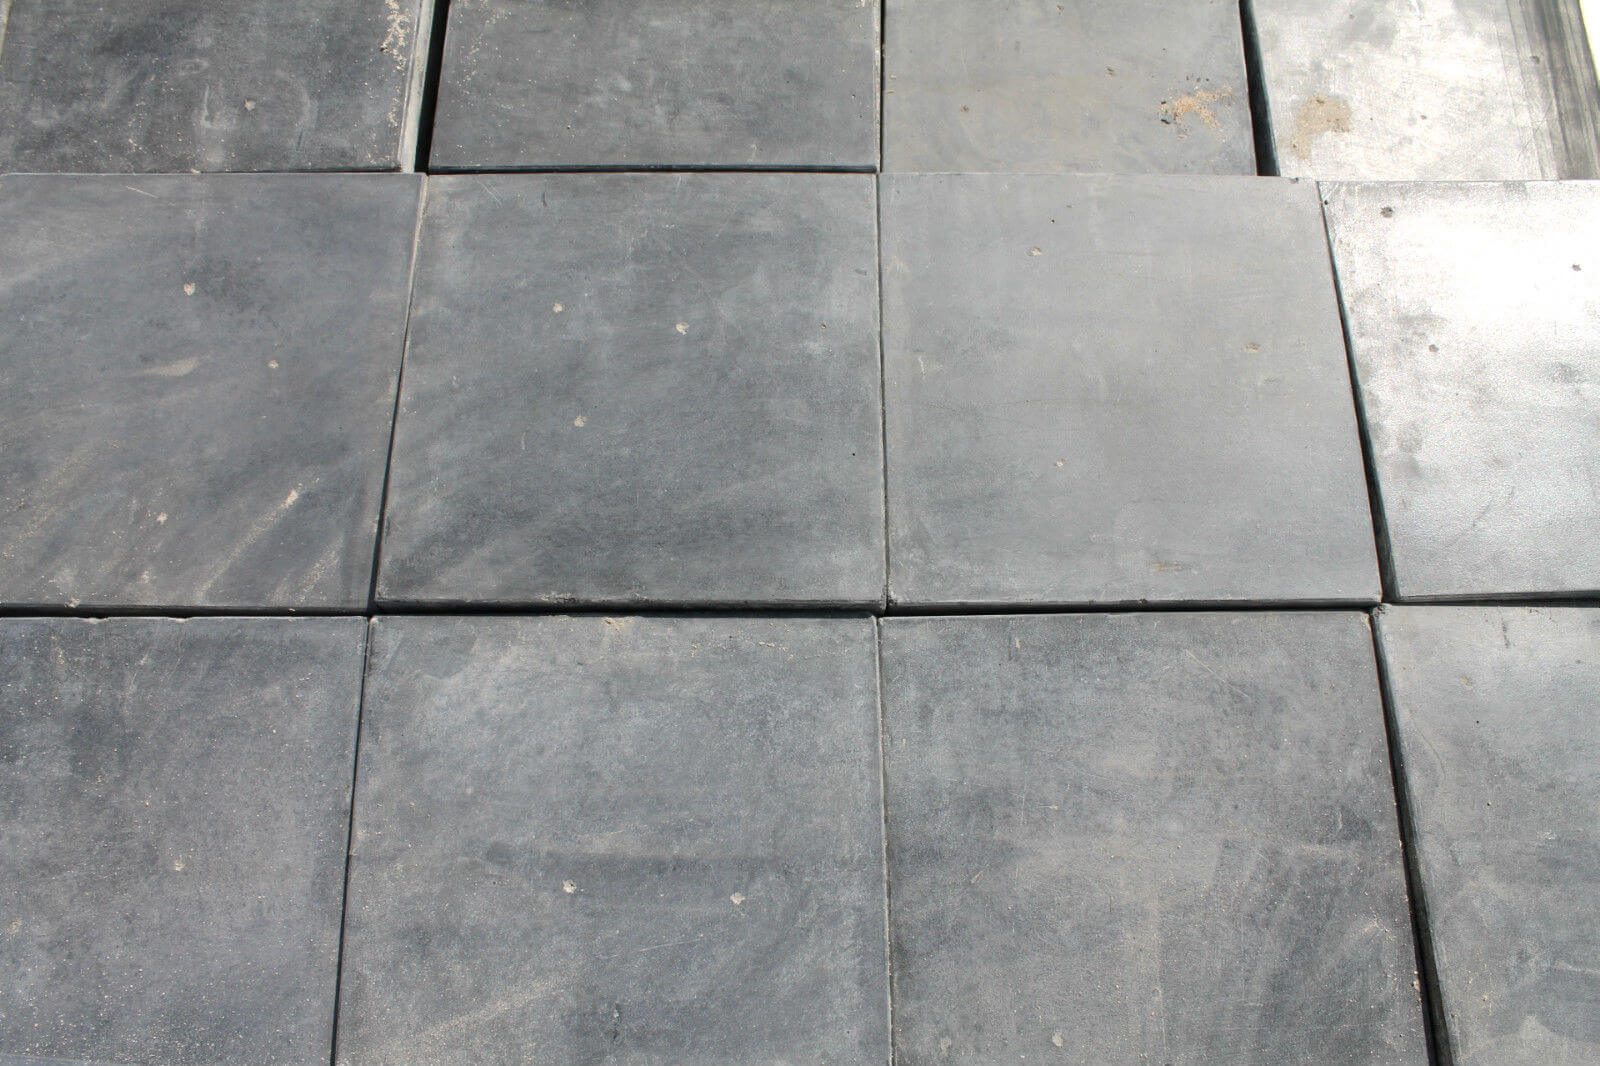 Black Quarry Tiles >> Reclaimed 9 x 9 Inch Blue Quarry Tiles - Warwick Reclamation